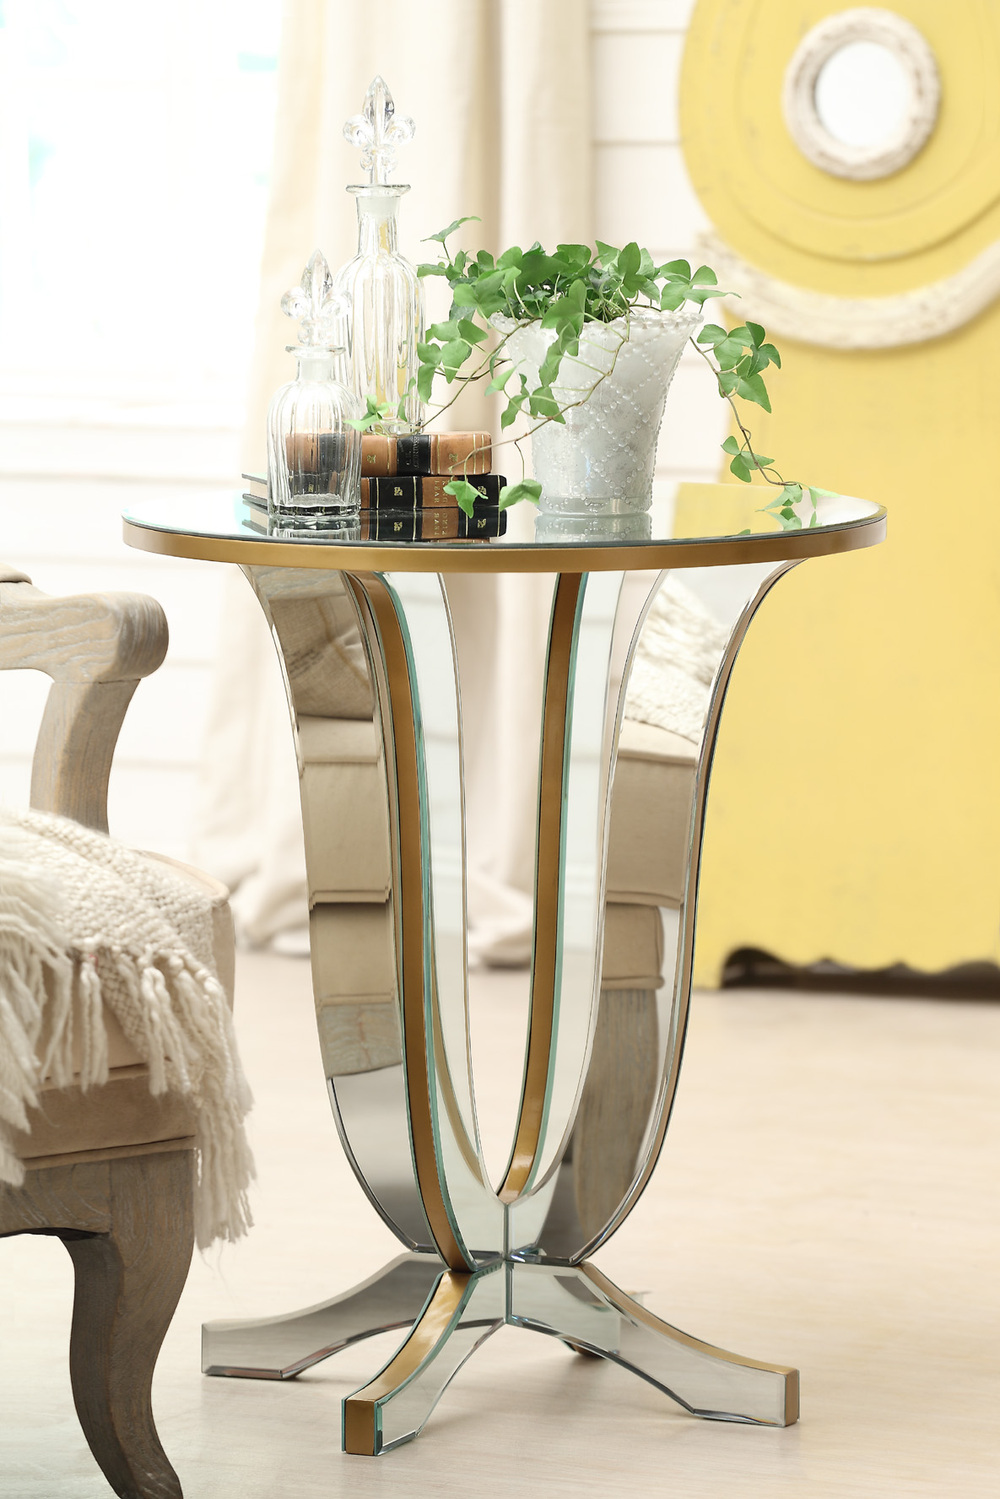 Makeup Stand Designs : Narrow furniture africa makeup glass tables dimensions master